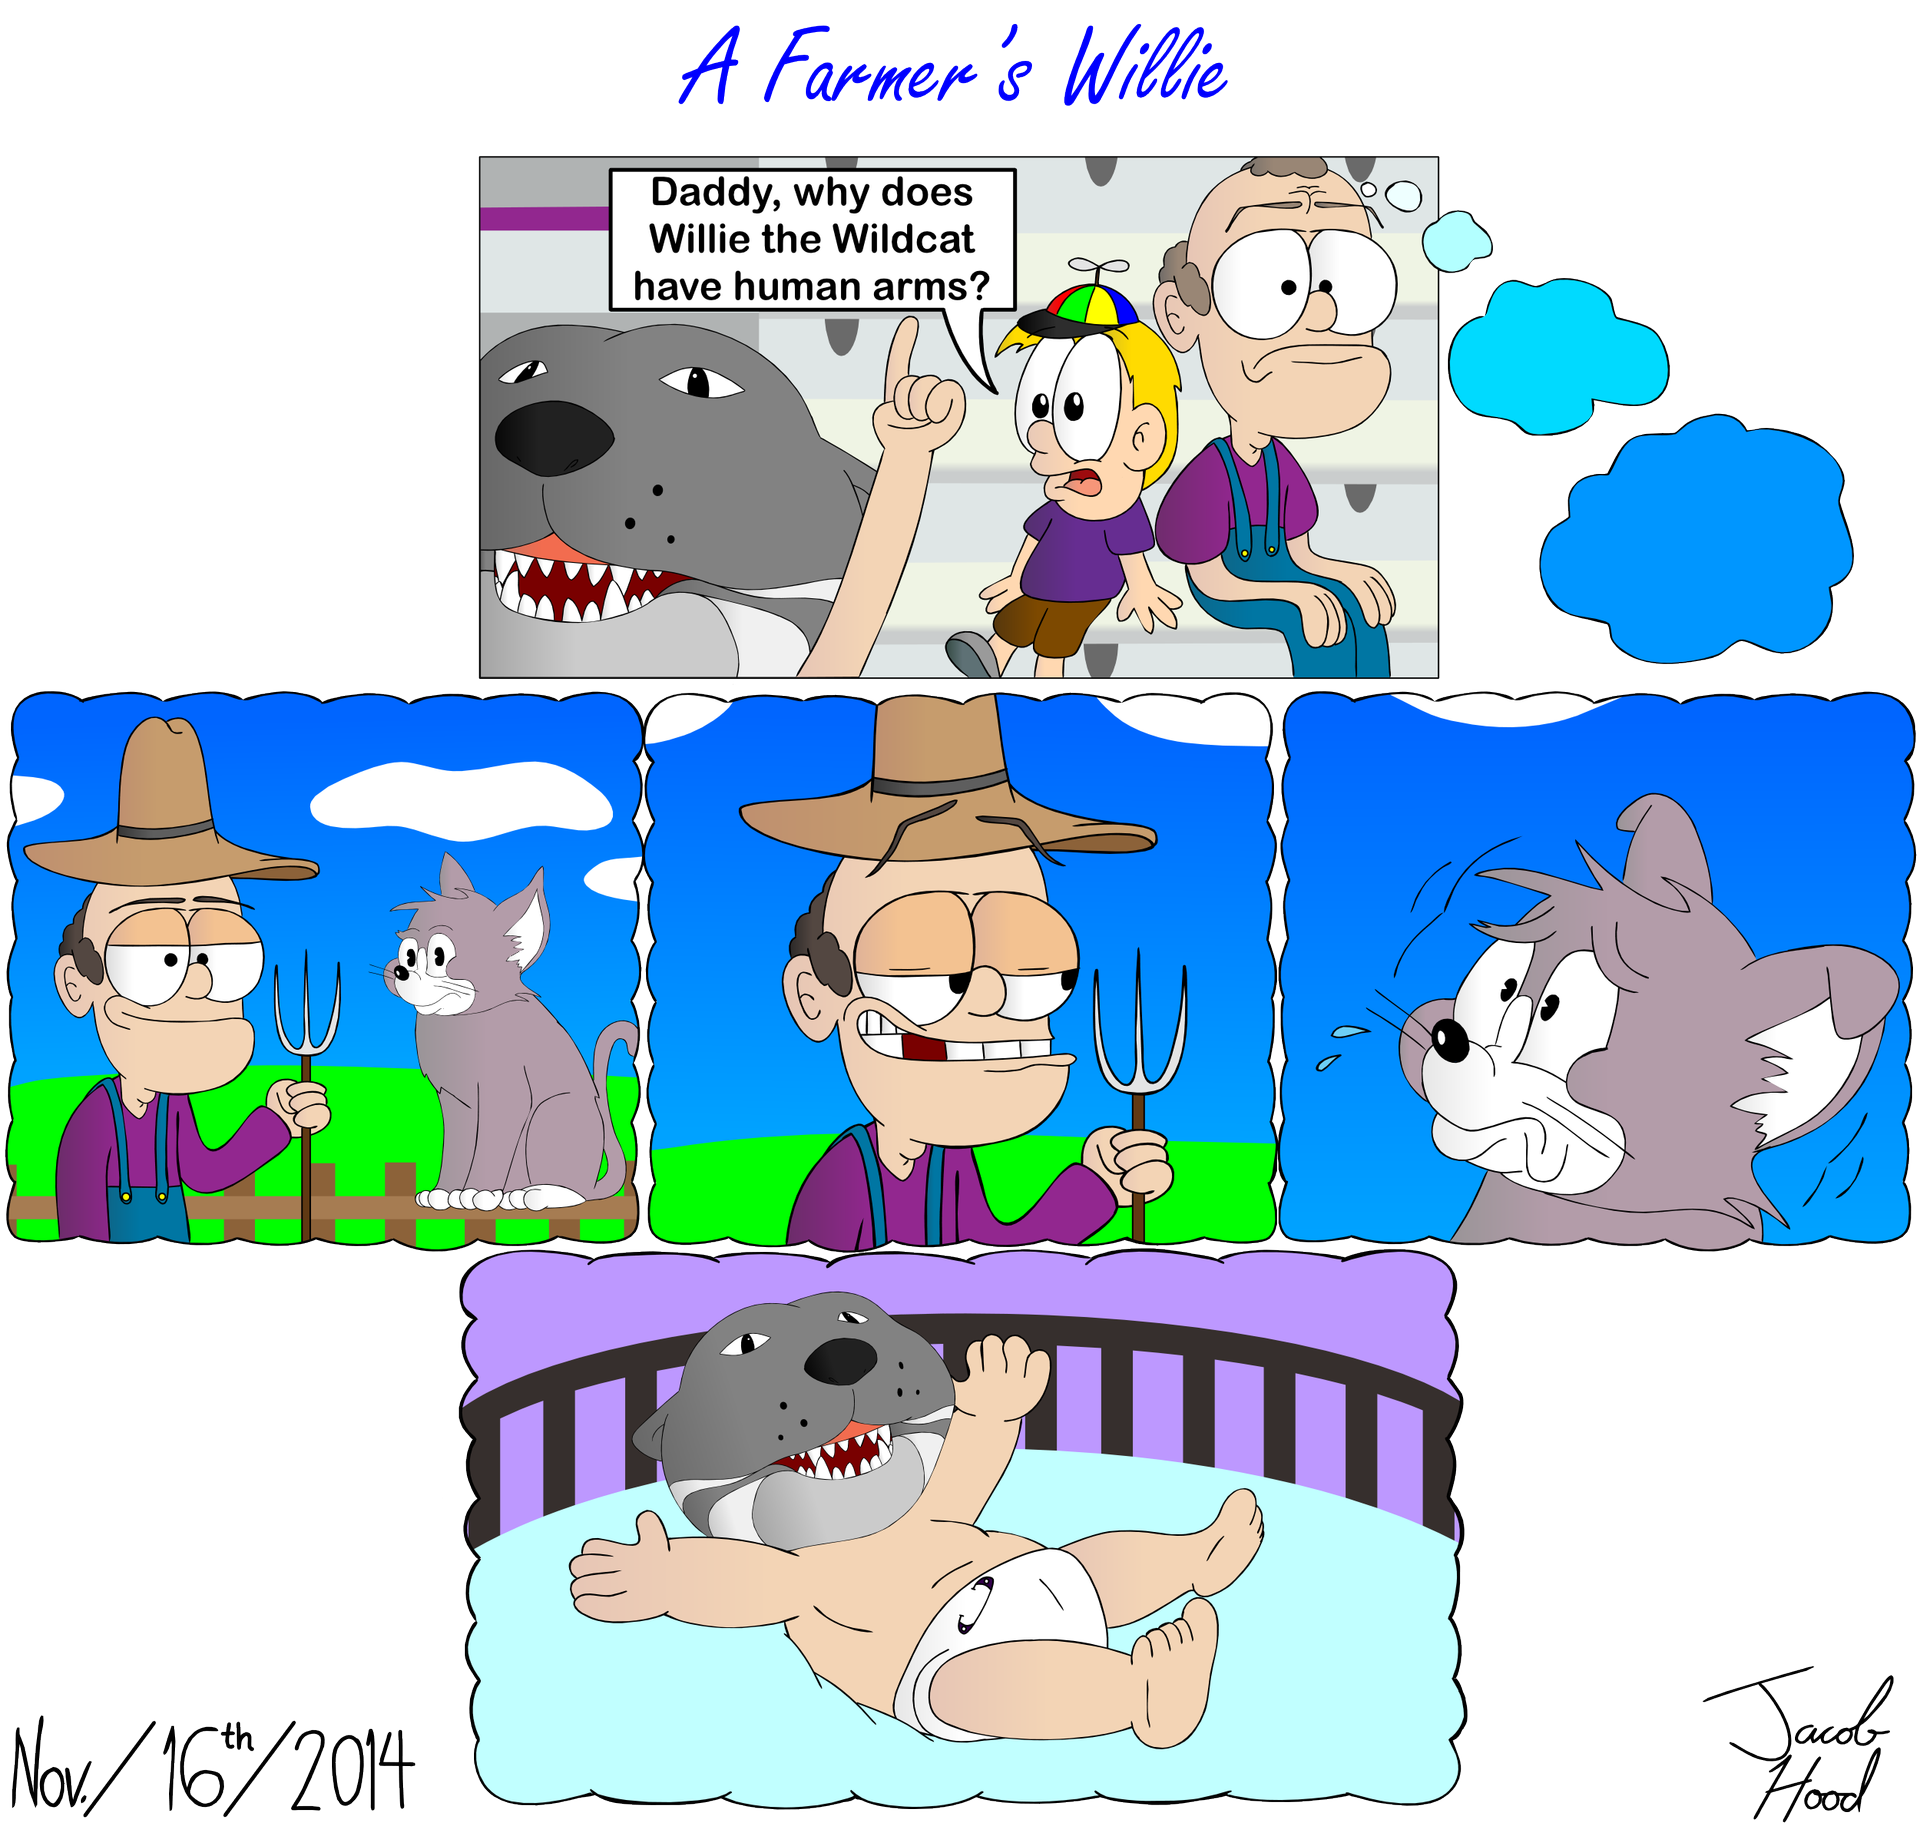 A Farmer's Willie (K-State Cartoon)